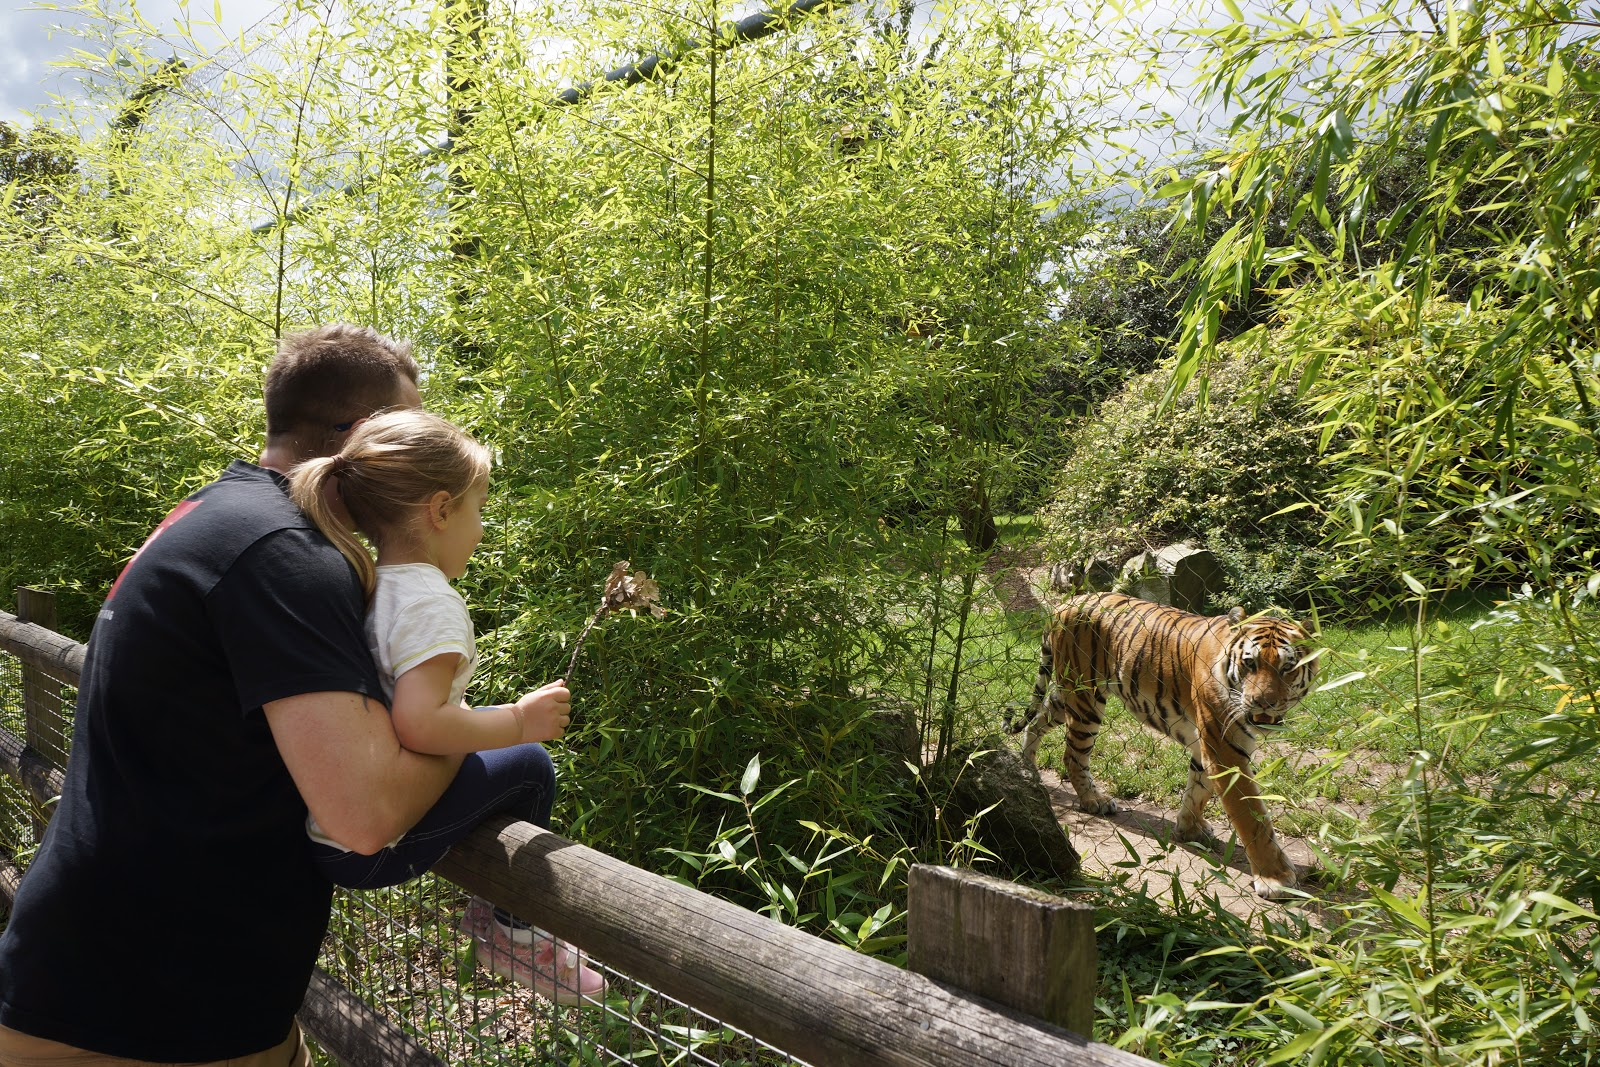 tiger walking past a dad and daughter